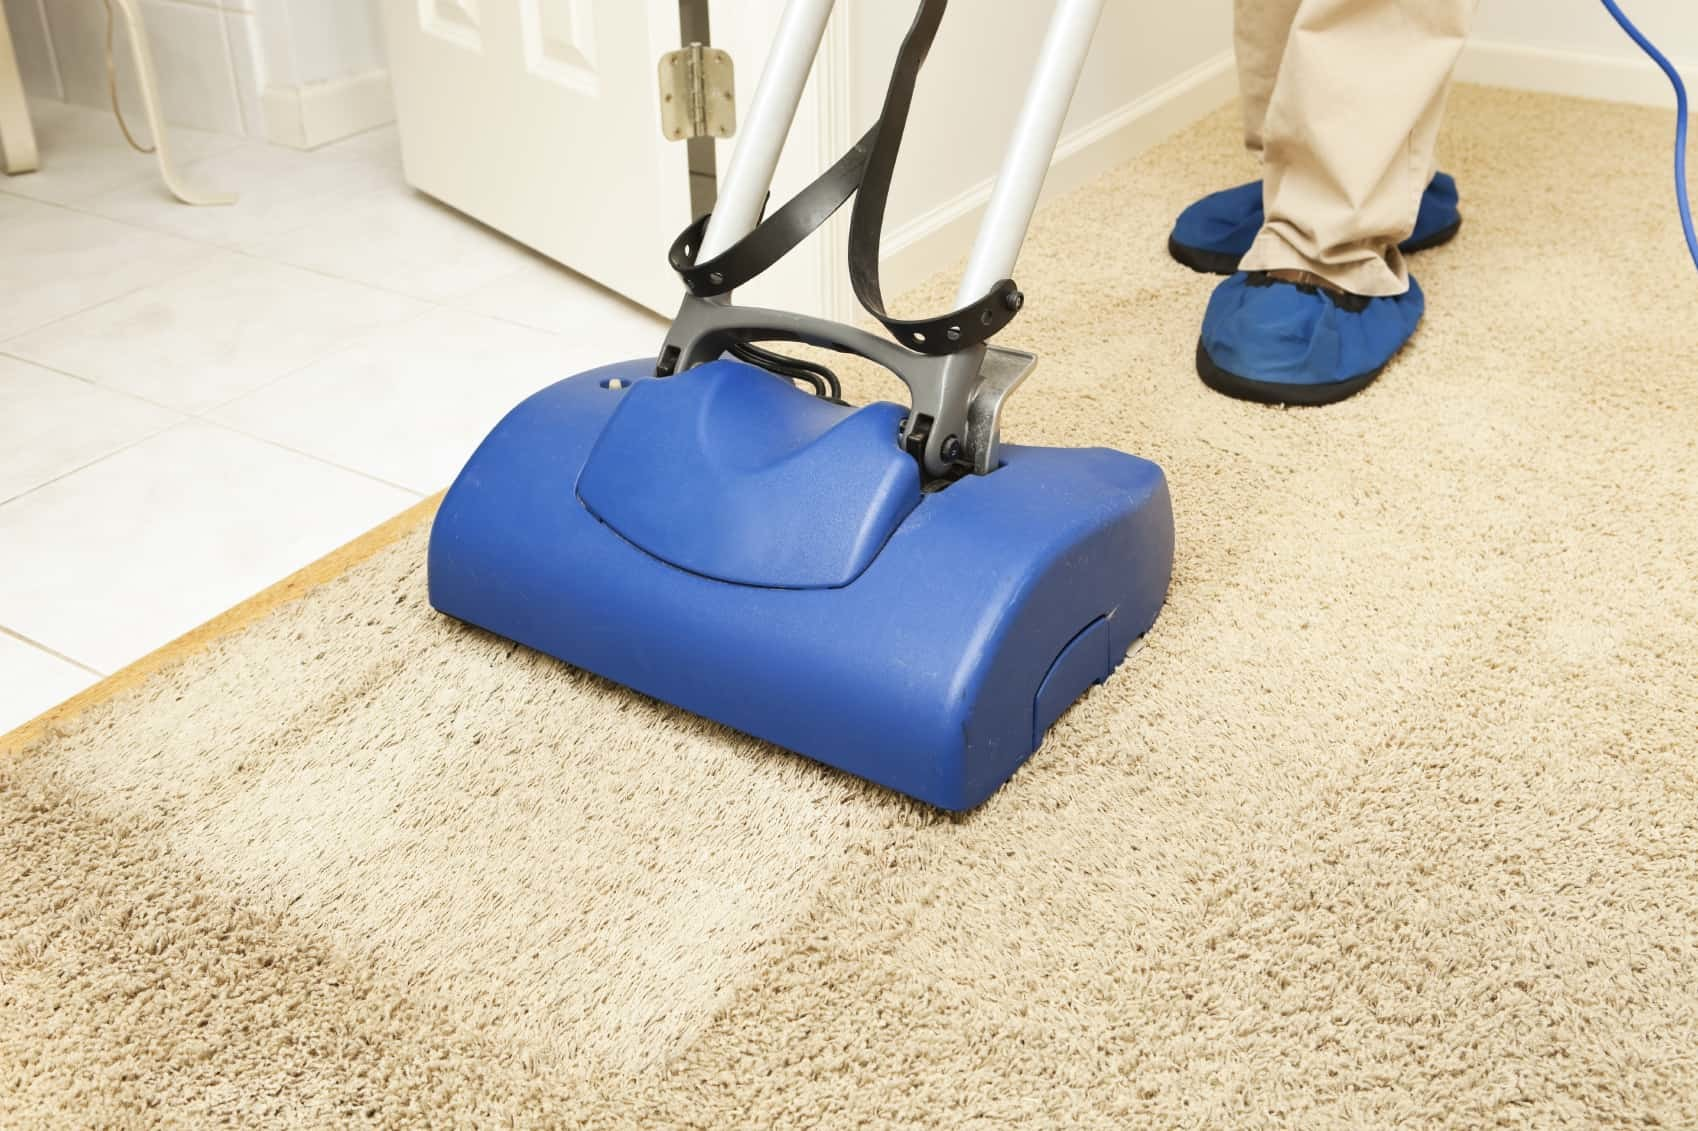 Top 3 Carpet Cleaning Methods Which Is Best